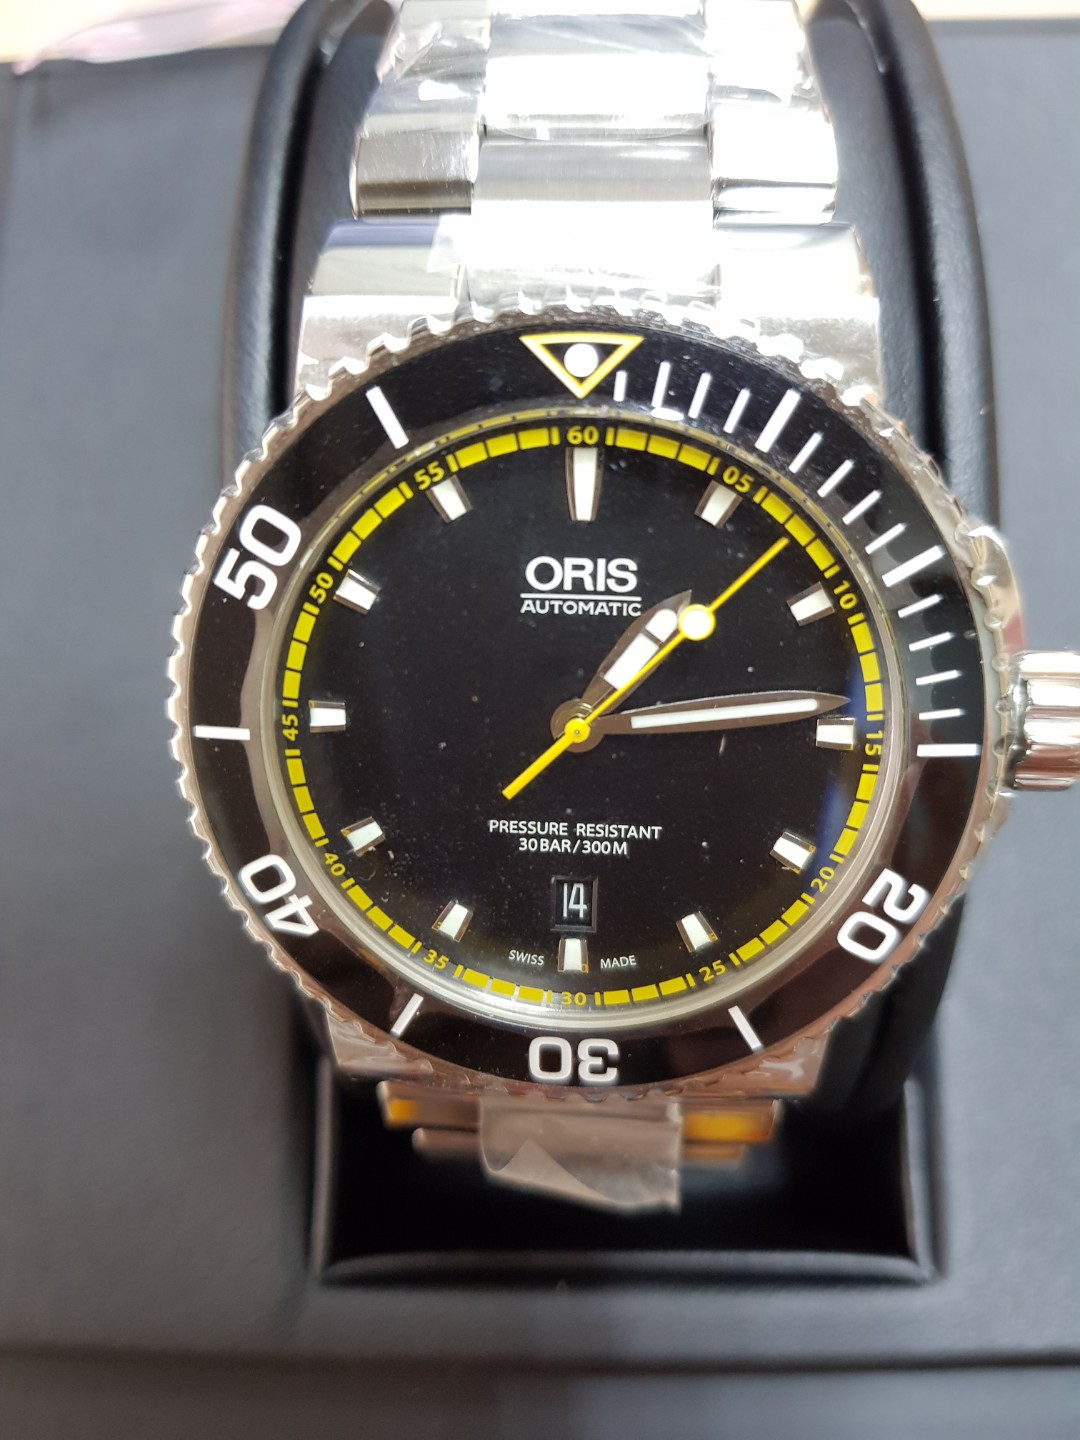 affa8639d Oris Diving watch, Men's Fashion, Watches on Carousell